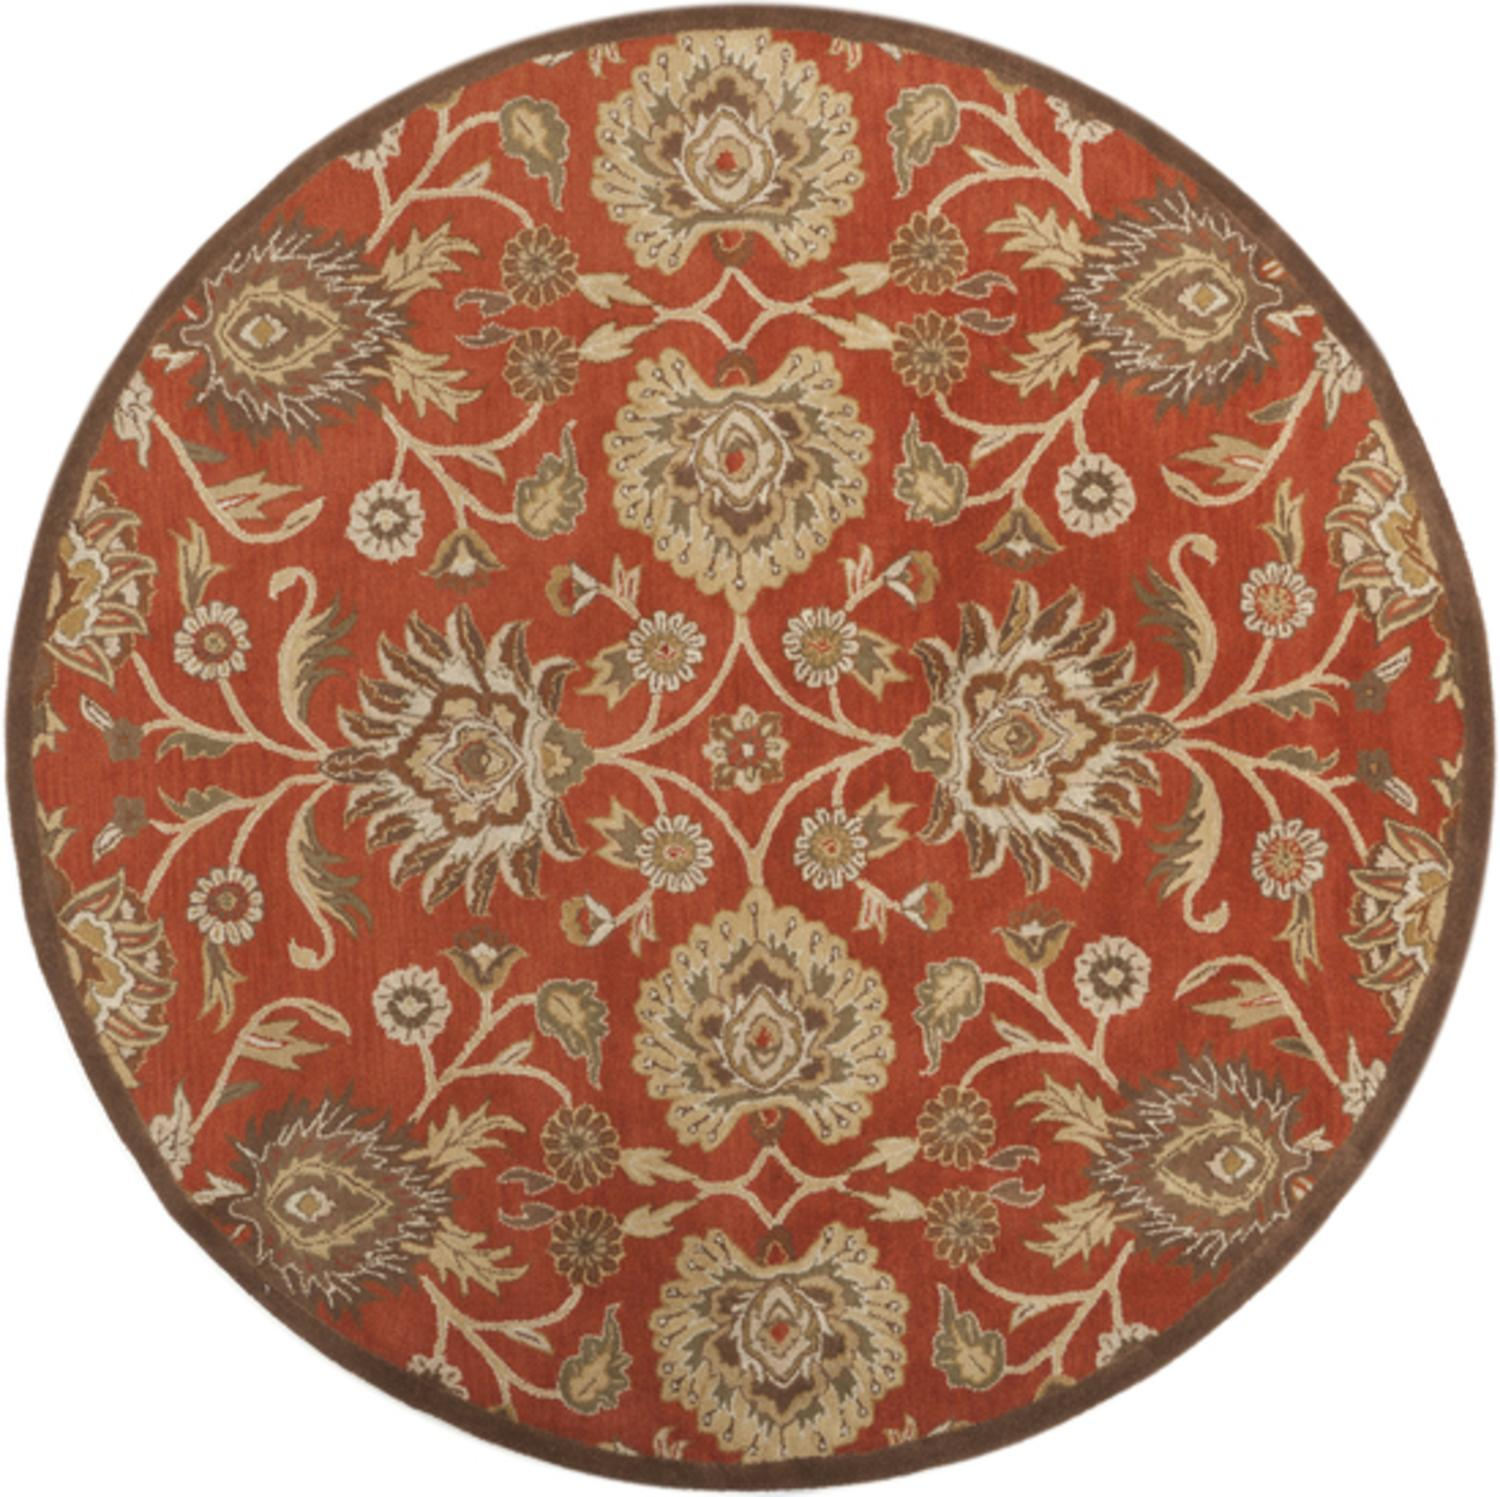 9.75' Octavia Spicy Brown and Camel Hand Tufted Wool Round Area Throw Rug